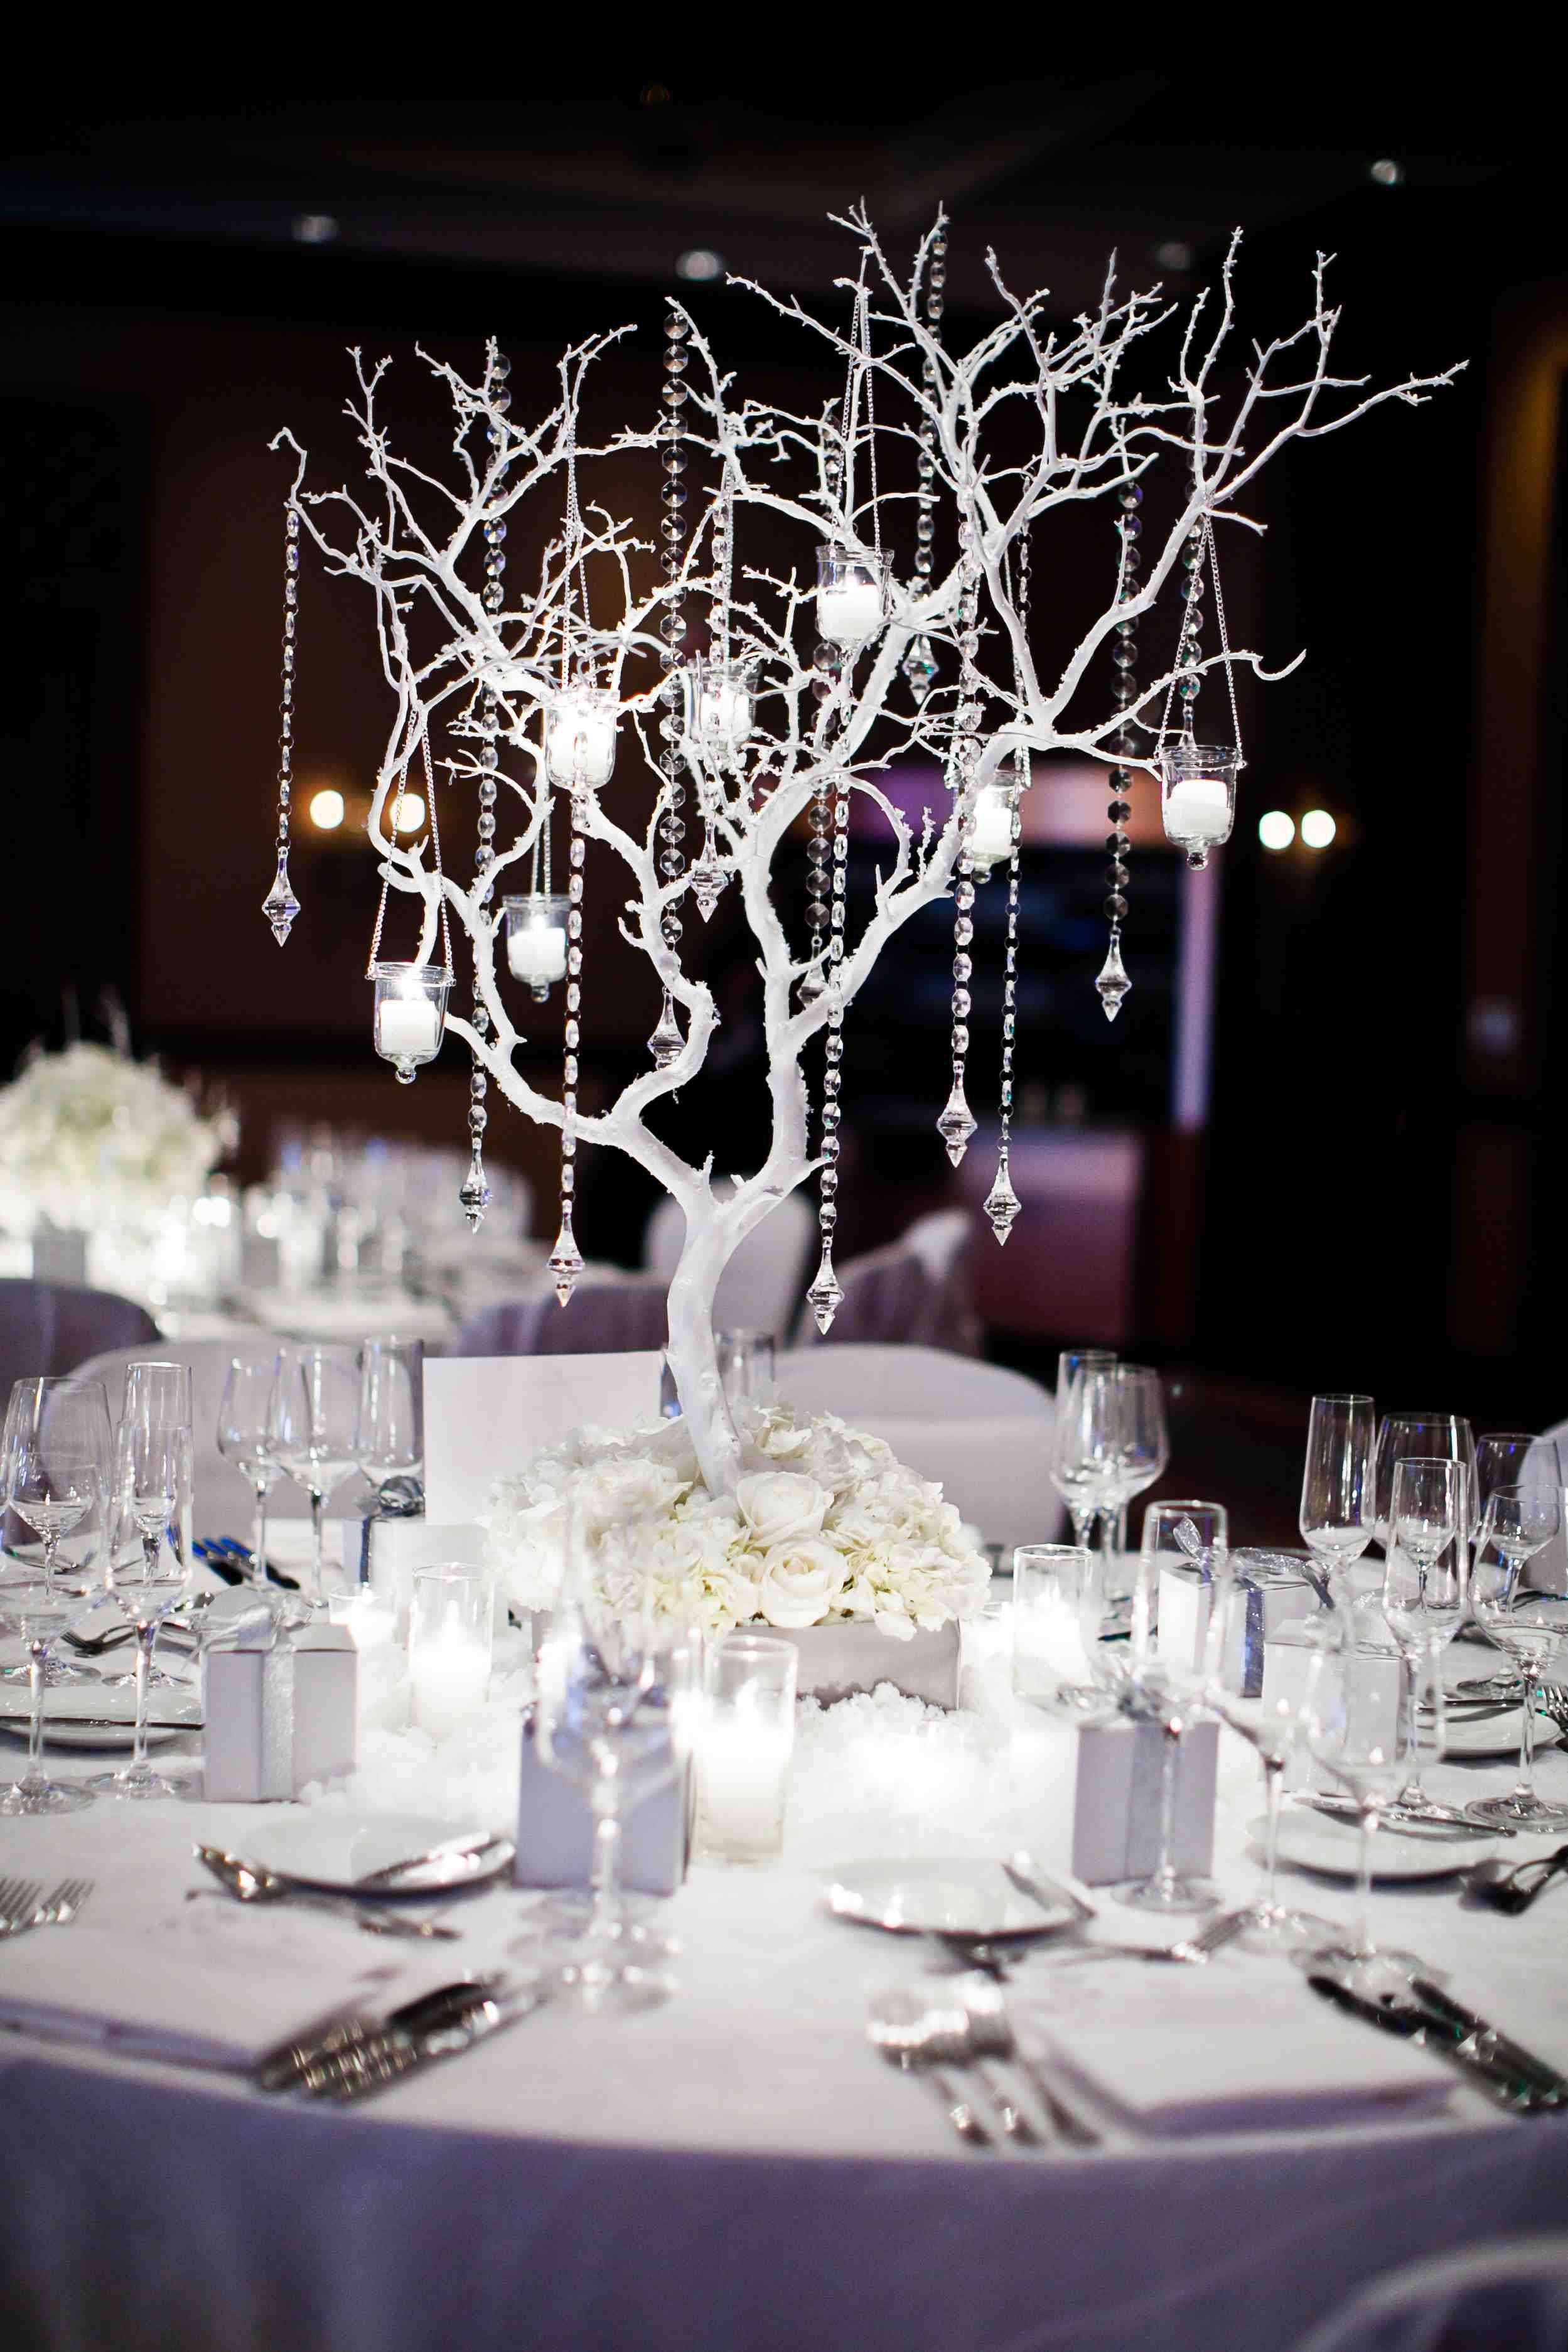 Incorporate Natural Details to Create a Winter Wonderland ...